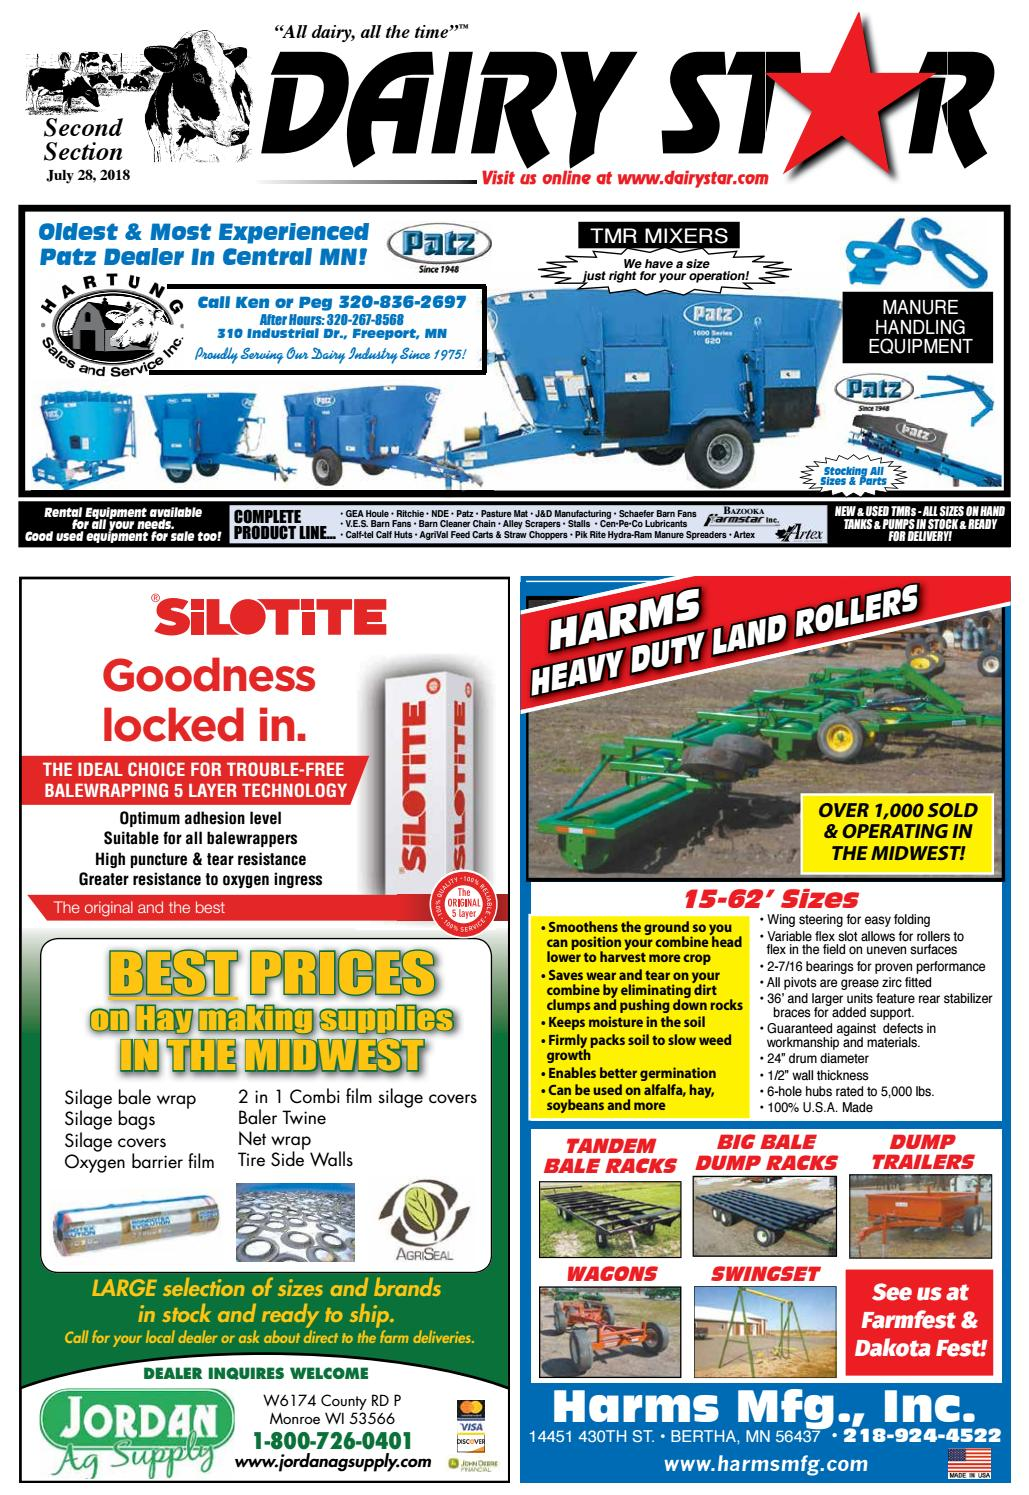 Dairy Star 7-18-18 2nd section by Dairy Star - issuu on